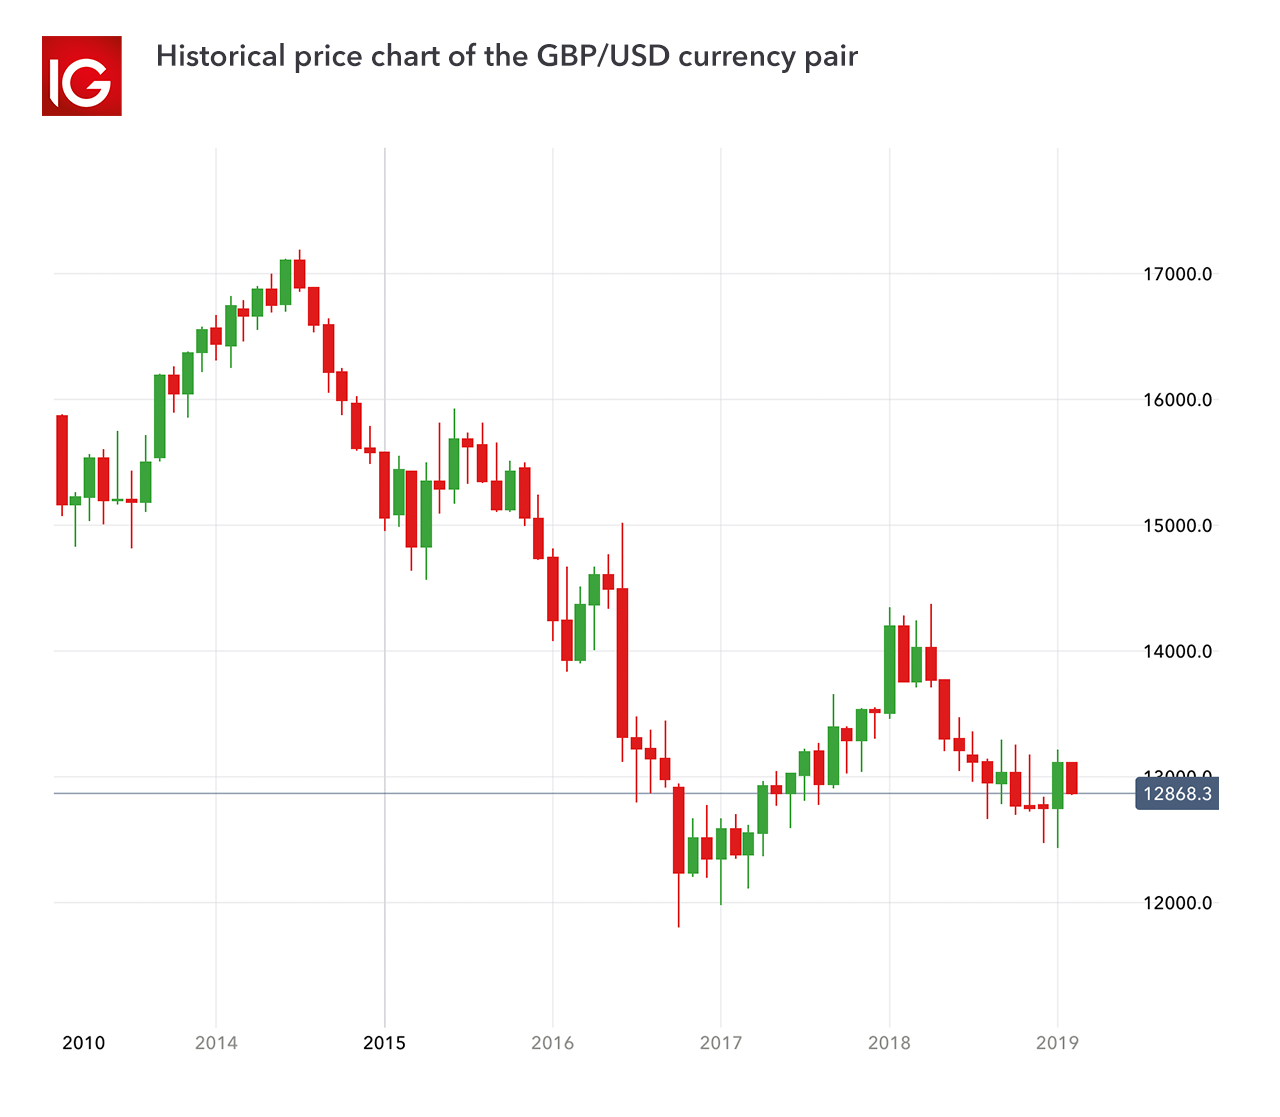 All gbp forex pairs